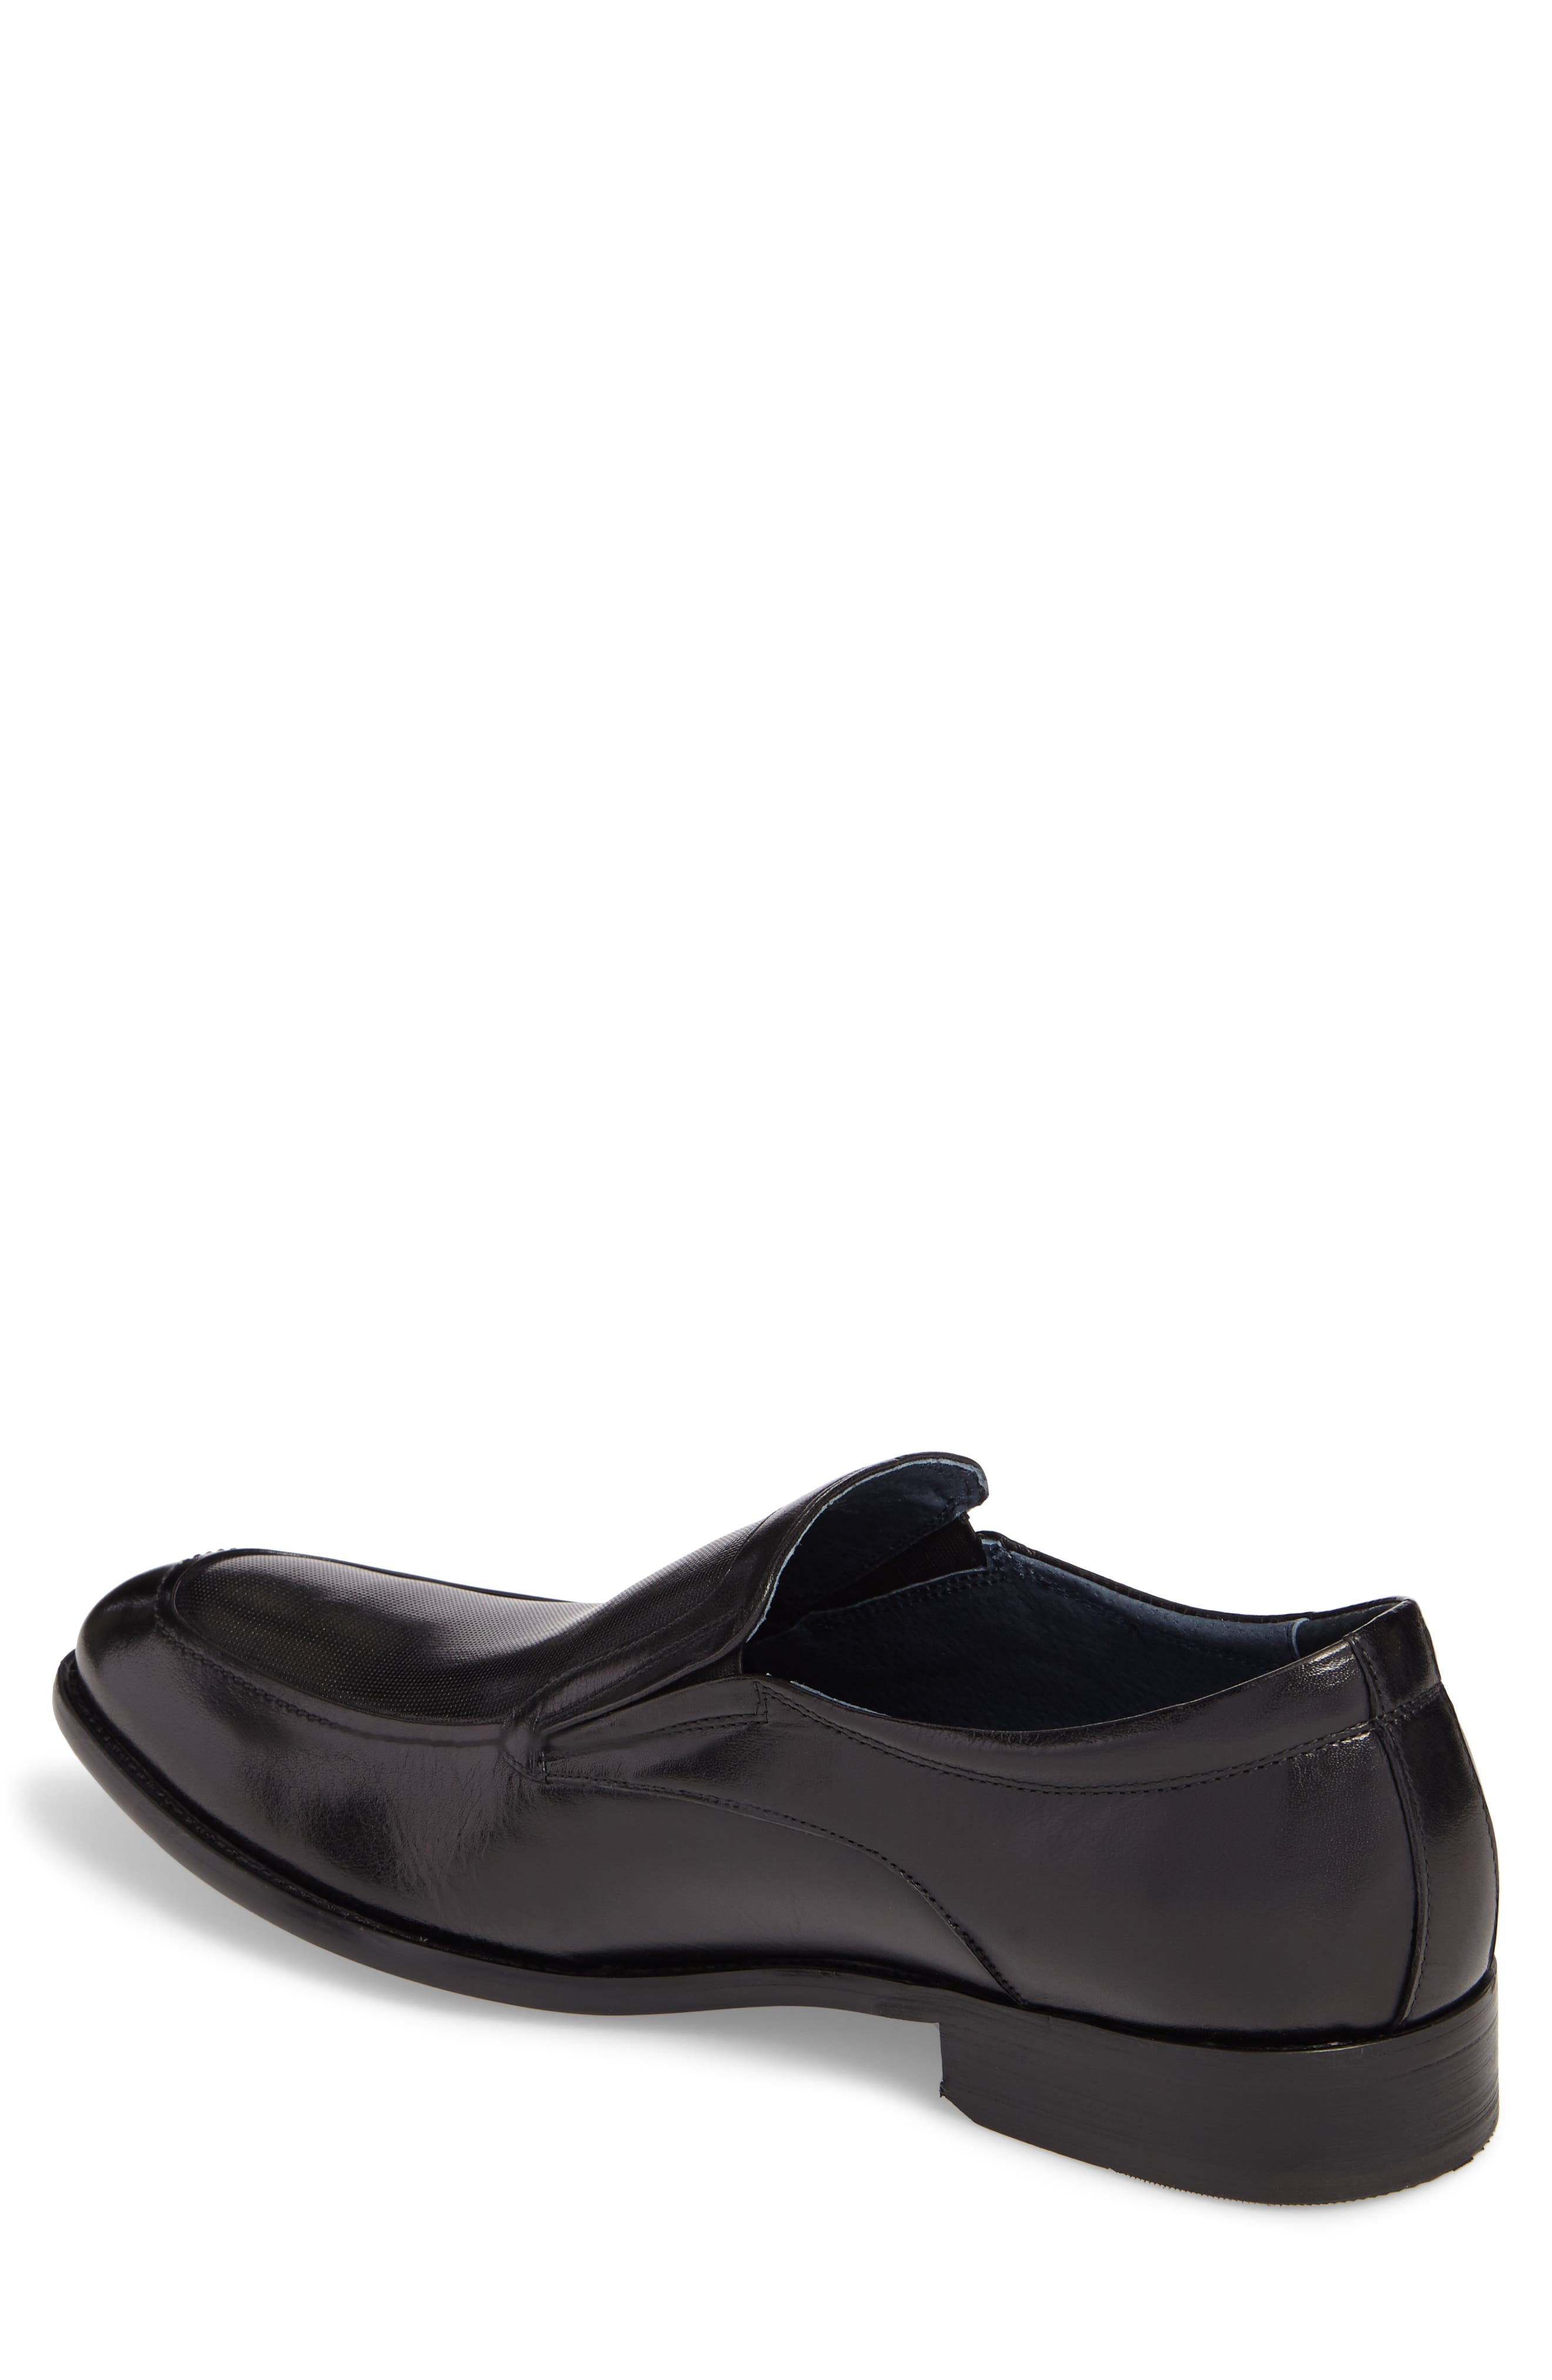 Alternate Image 2  - Stacy Adams Jace Embossed Apron Toe Loafer (Men)